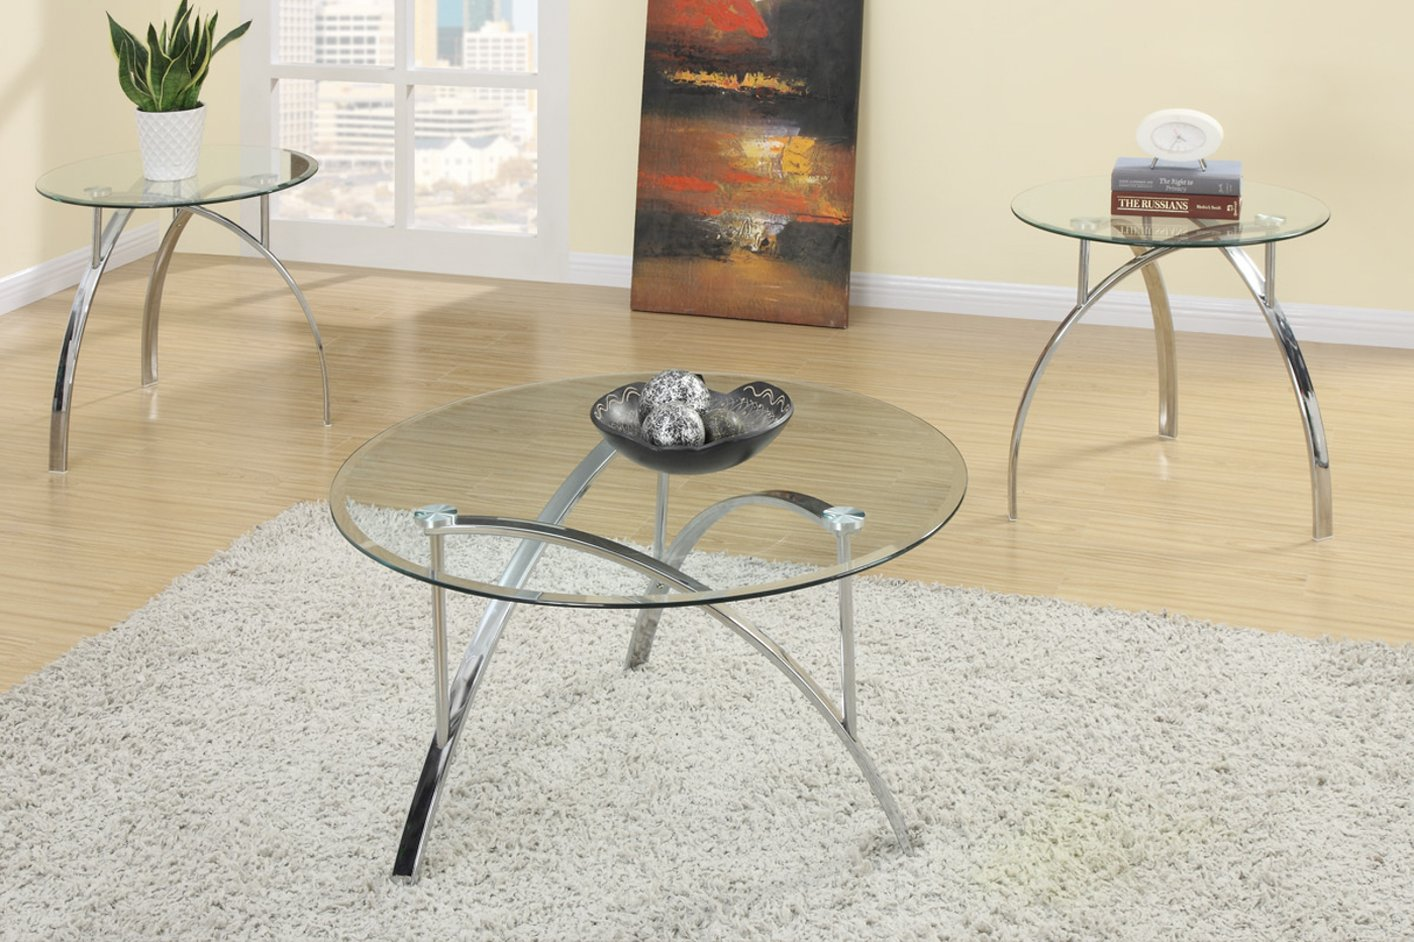 Silver Glass 3pc Coffee Table Set - Poundex F3098 Silver Glass 3pc Coffee Table Set - Steal-A-Sofa